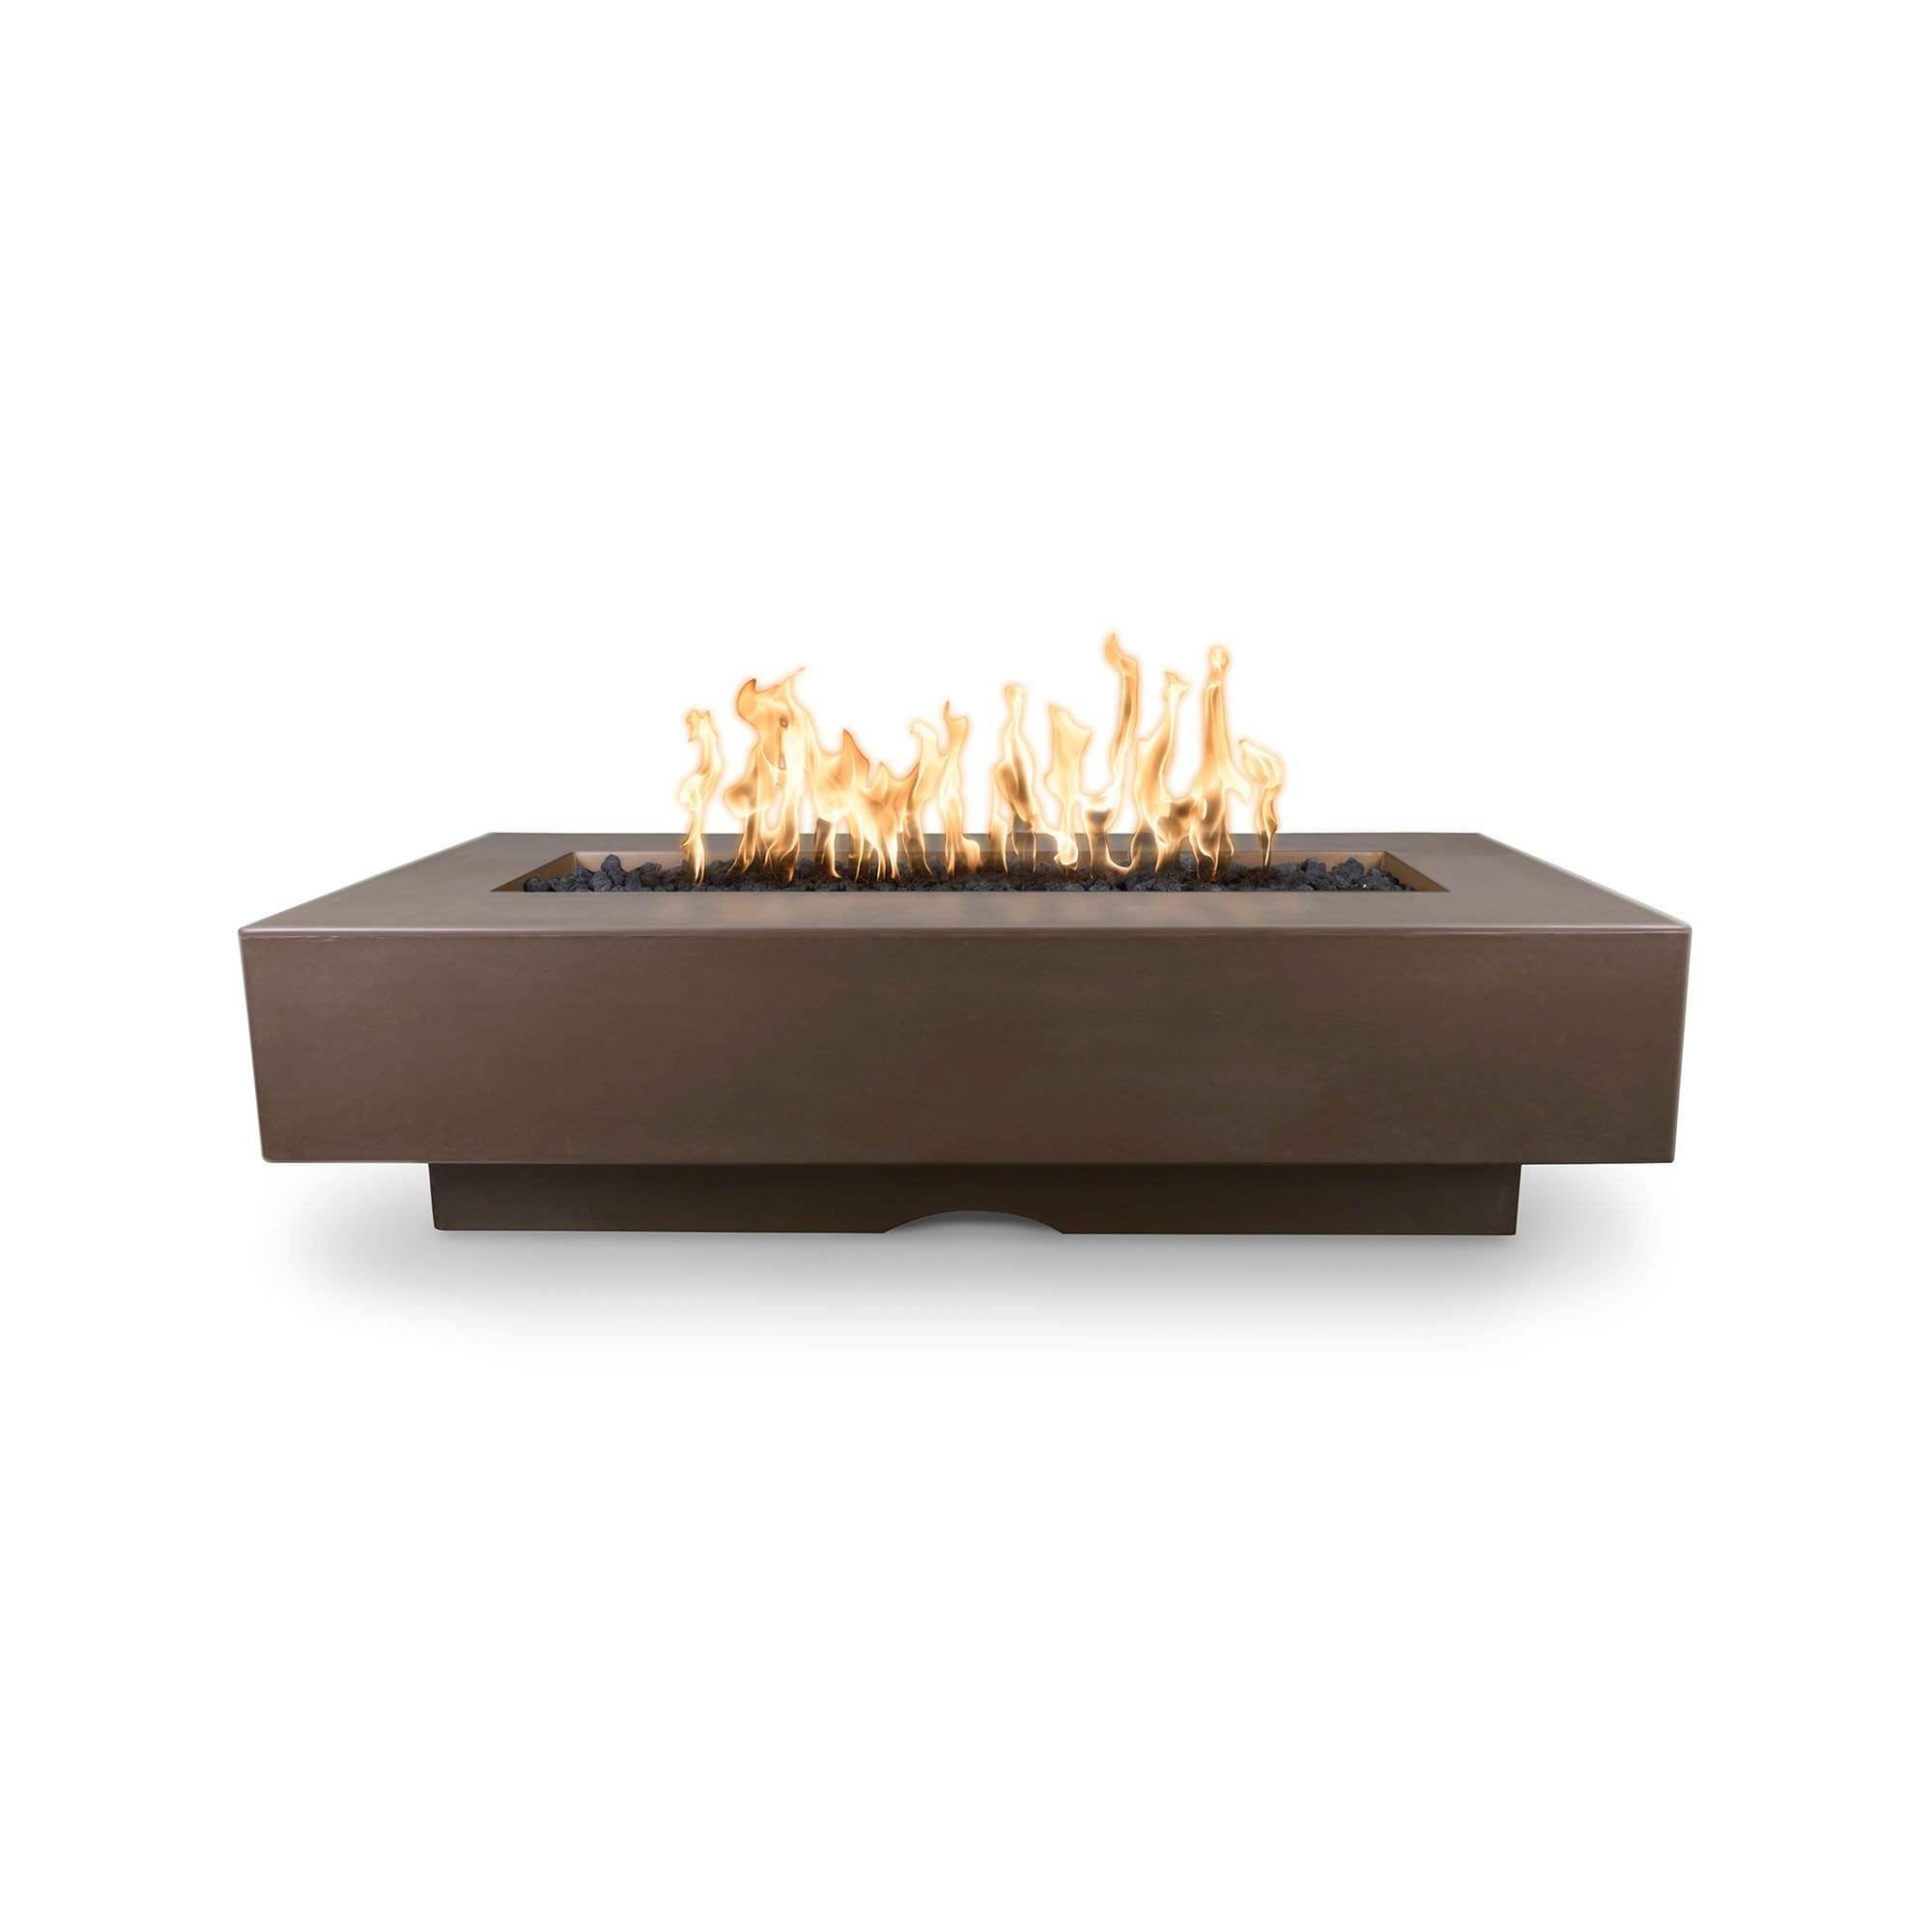 "The Outdoor Plus Del Mar Concrete Fire Pit 84"" Model OPT-DEL8428 Fire Pit The Outdoor Plus Chocolate Electronic Ignition Natural Gas"